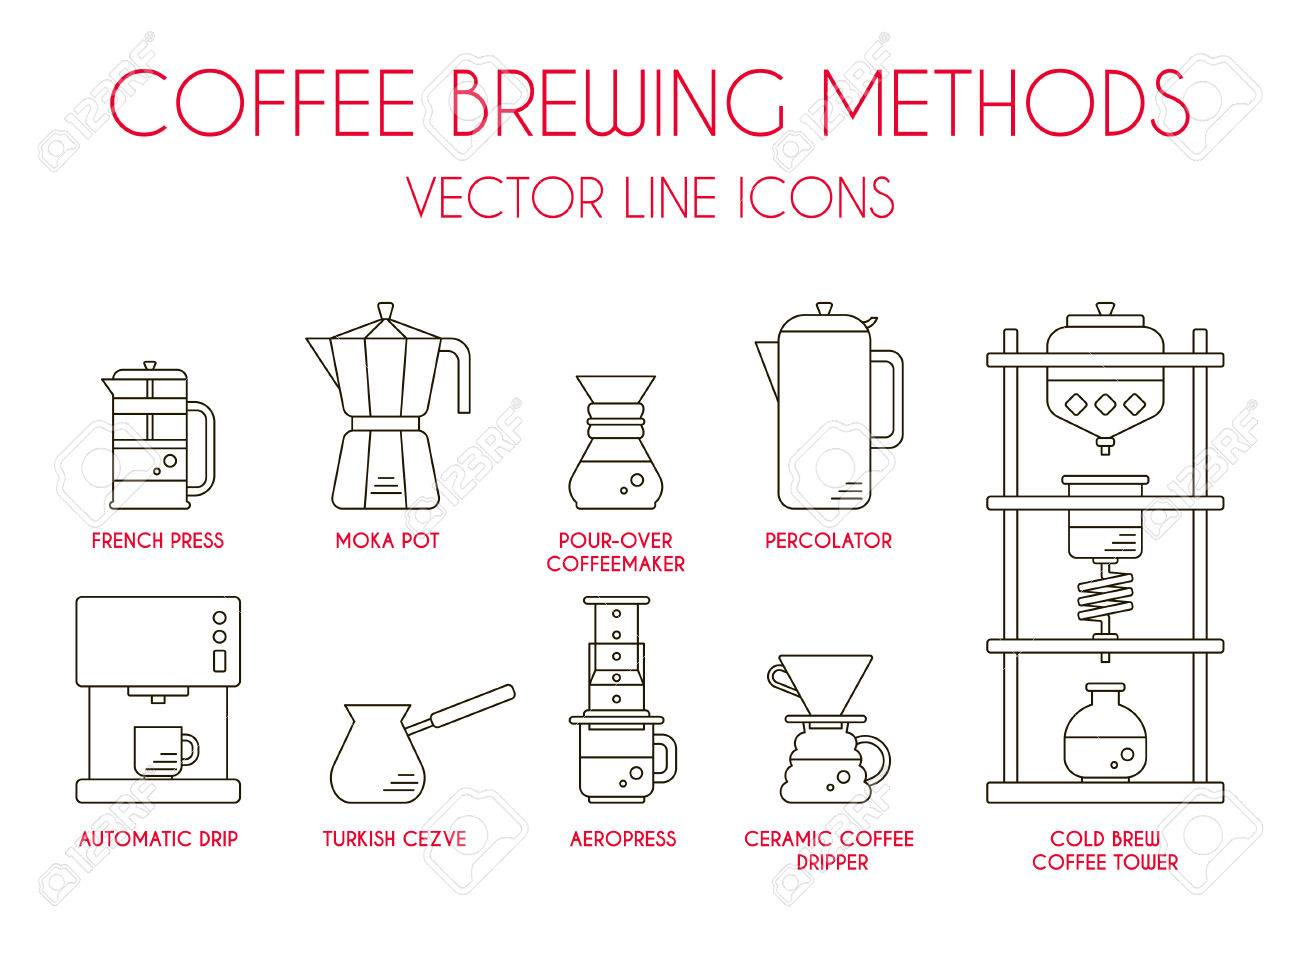 Coffee brewing methods, vector thin line icon set. - 84274599